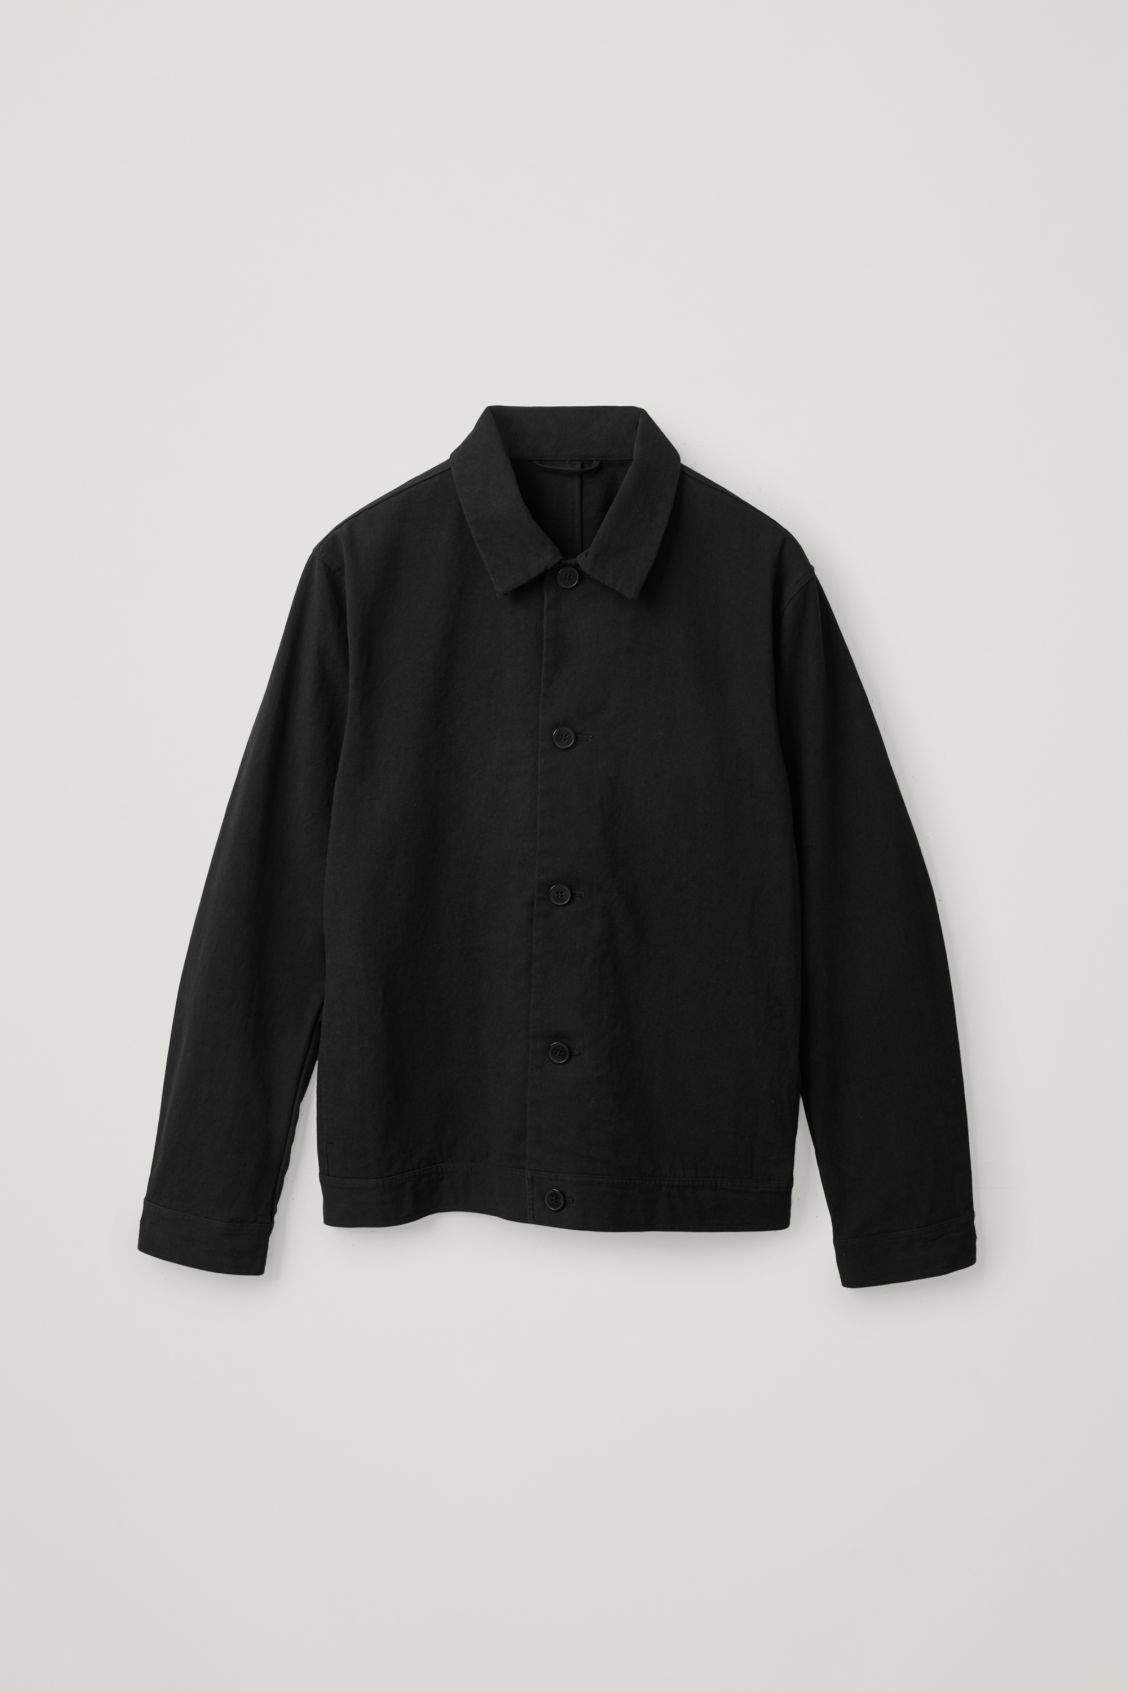 Cos Washed Denim Utility Jacket In Black